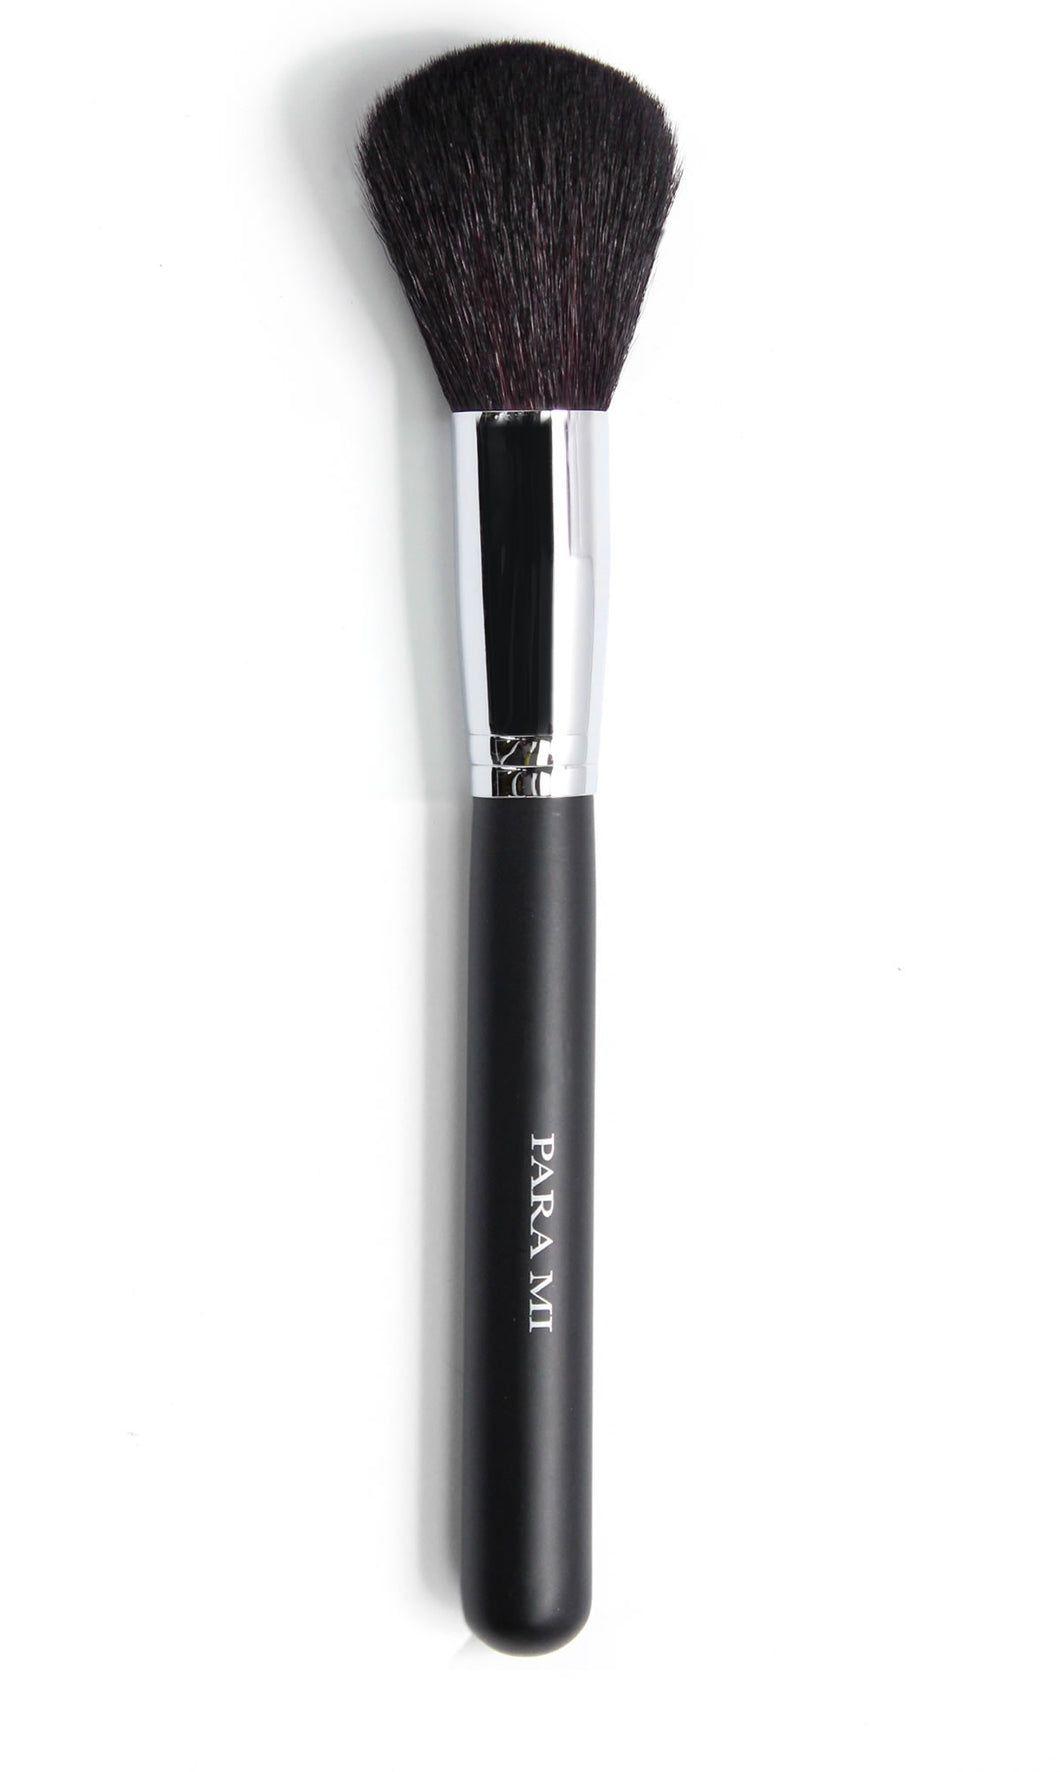 Dome Powder Brush 546